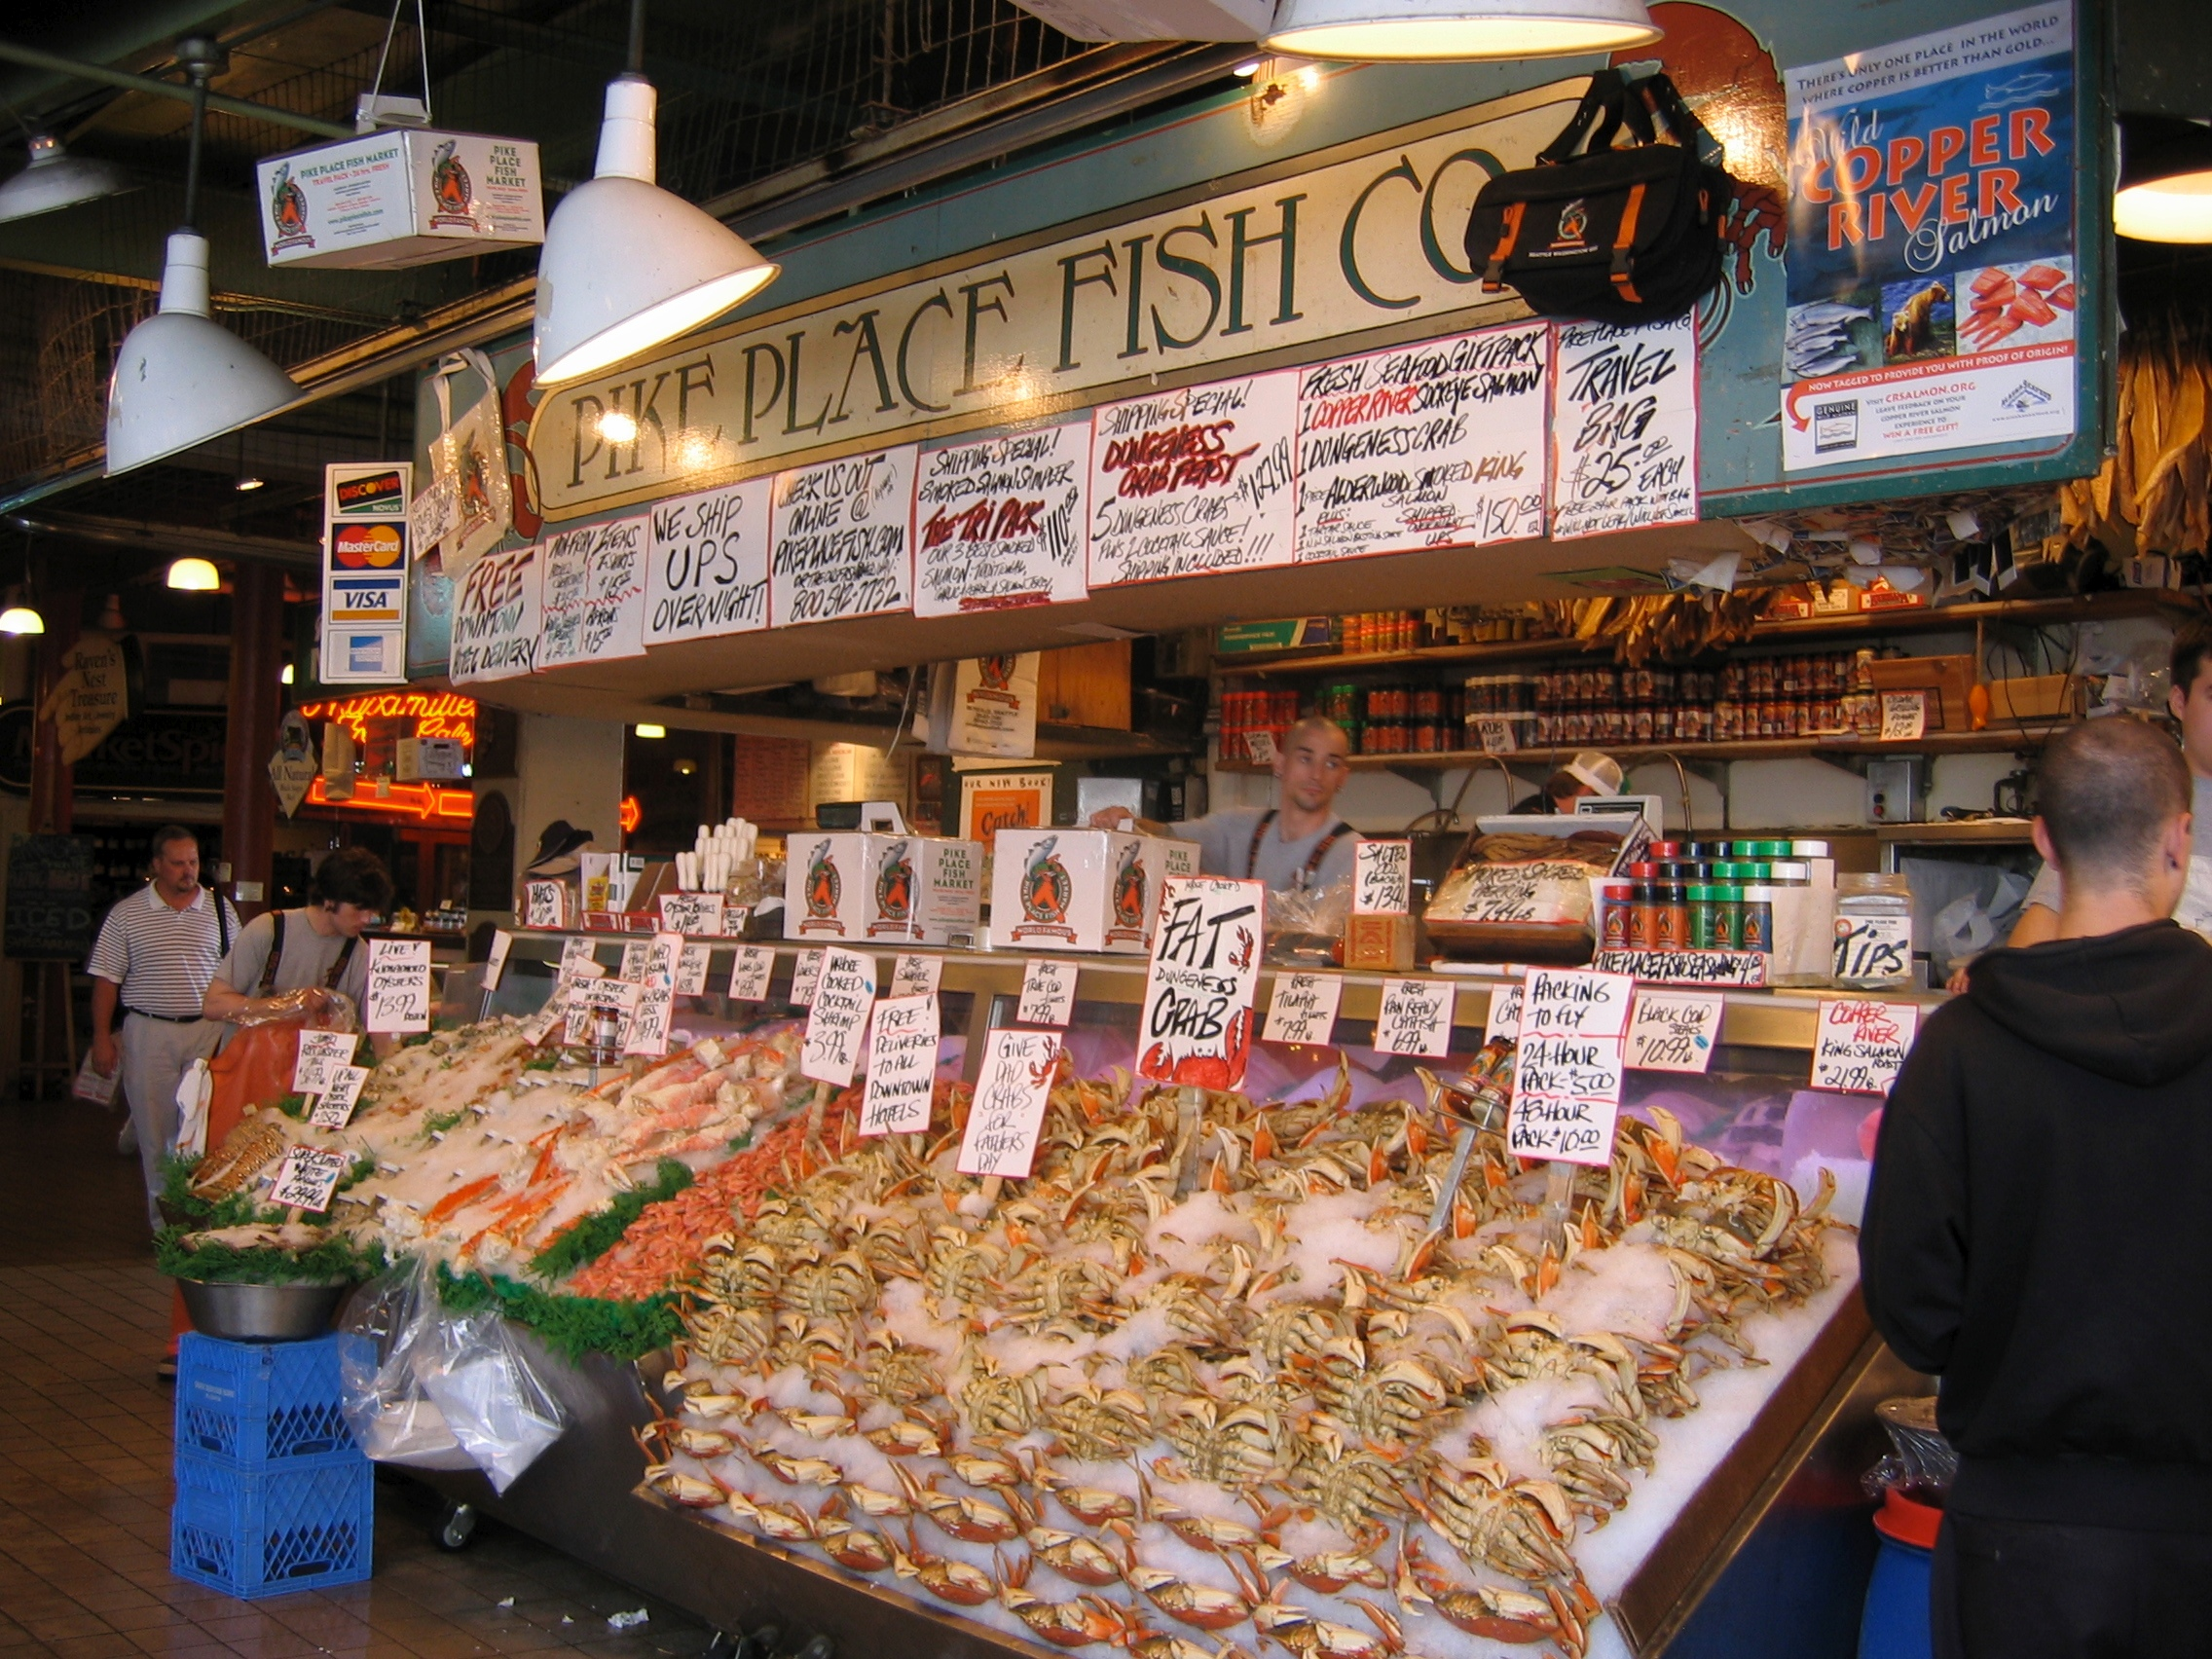 Pike place fish market wikiwand for The fish place